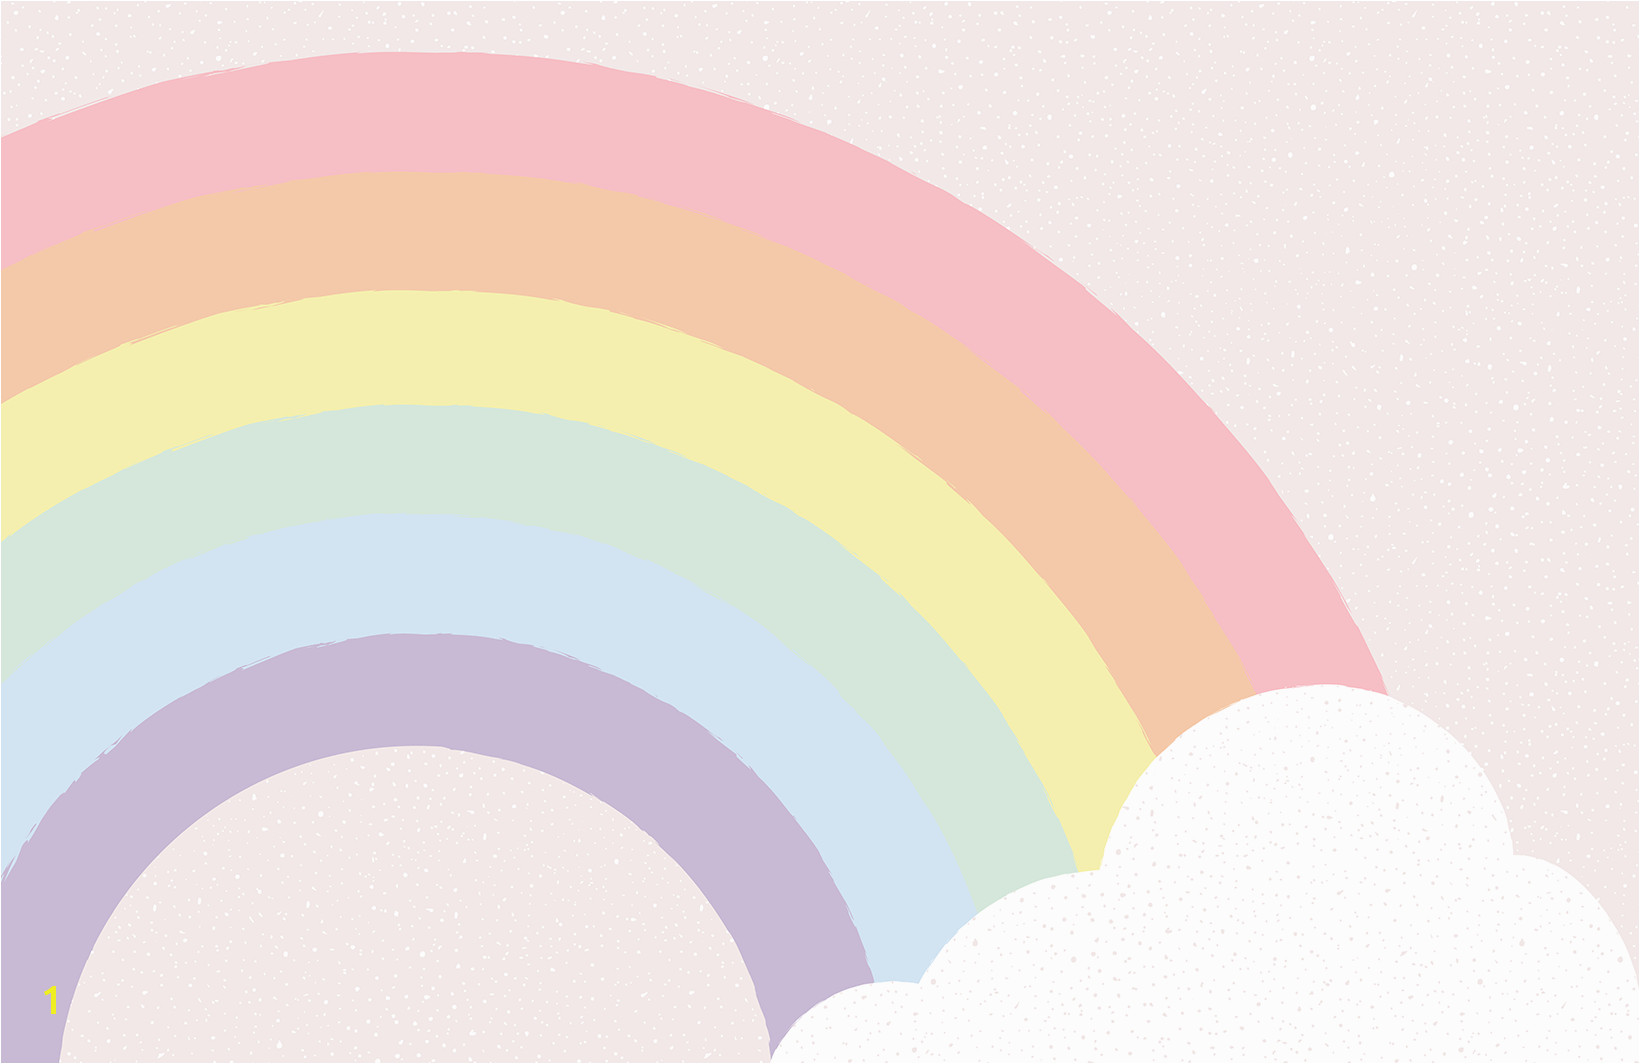 This playful kids pastel rainbow wallpaper mural is a sweet design perfect for bedrooms or playrooms A special rainbow design featuring soft pastels